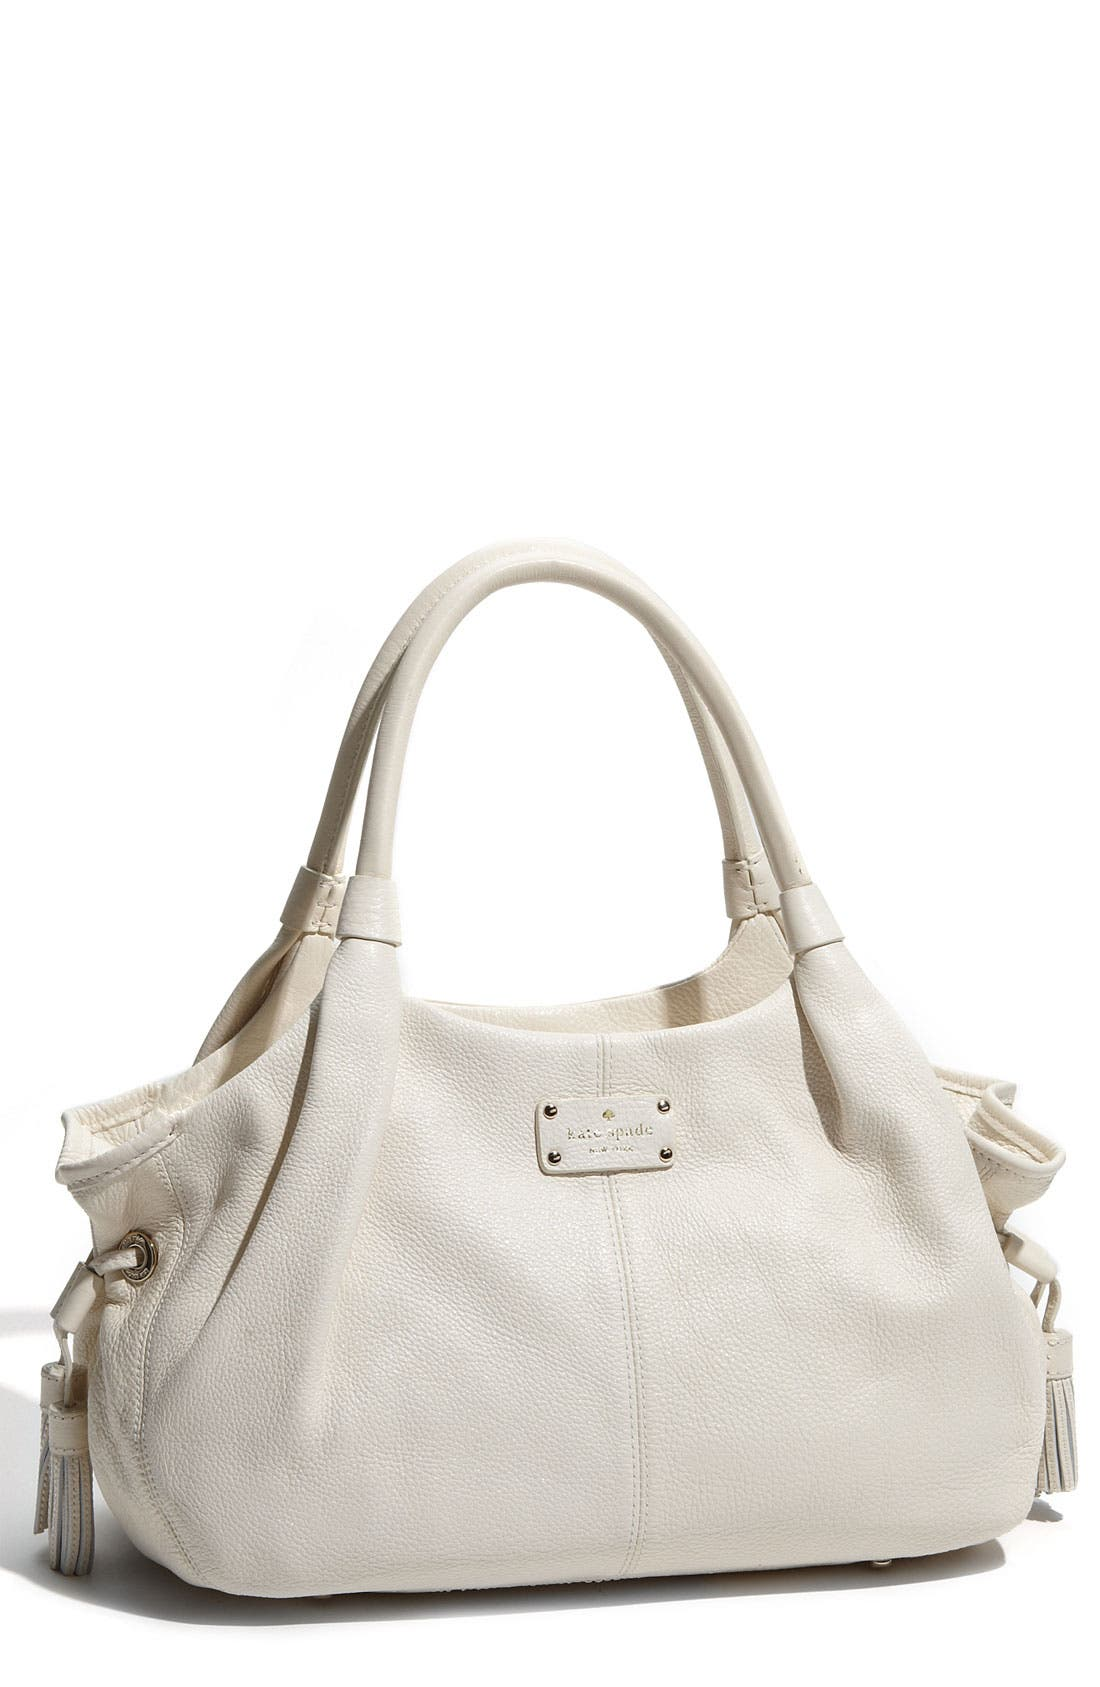 Main Image - kate spade new york 'macdougal alley - stevie' satchel